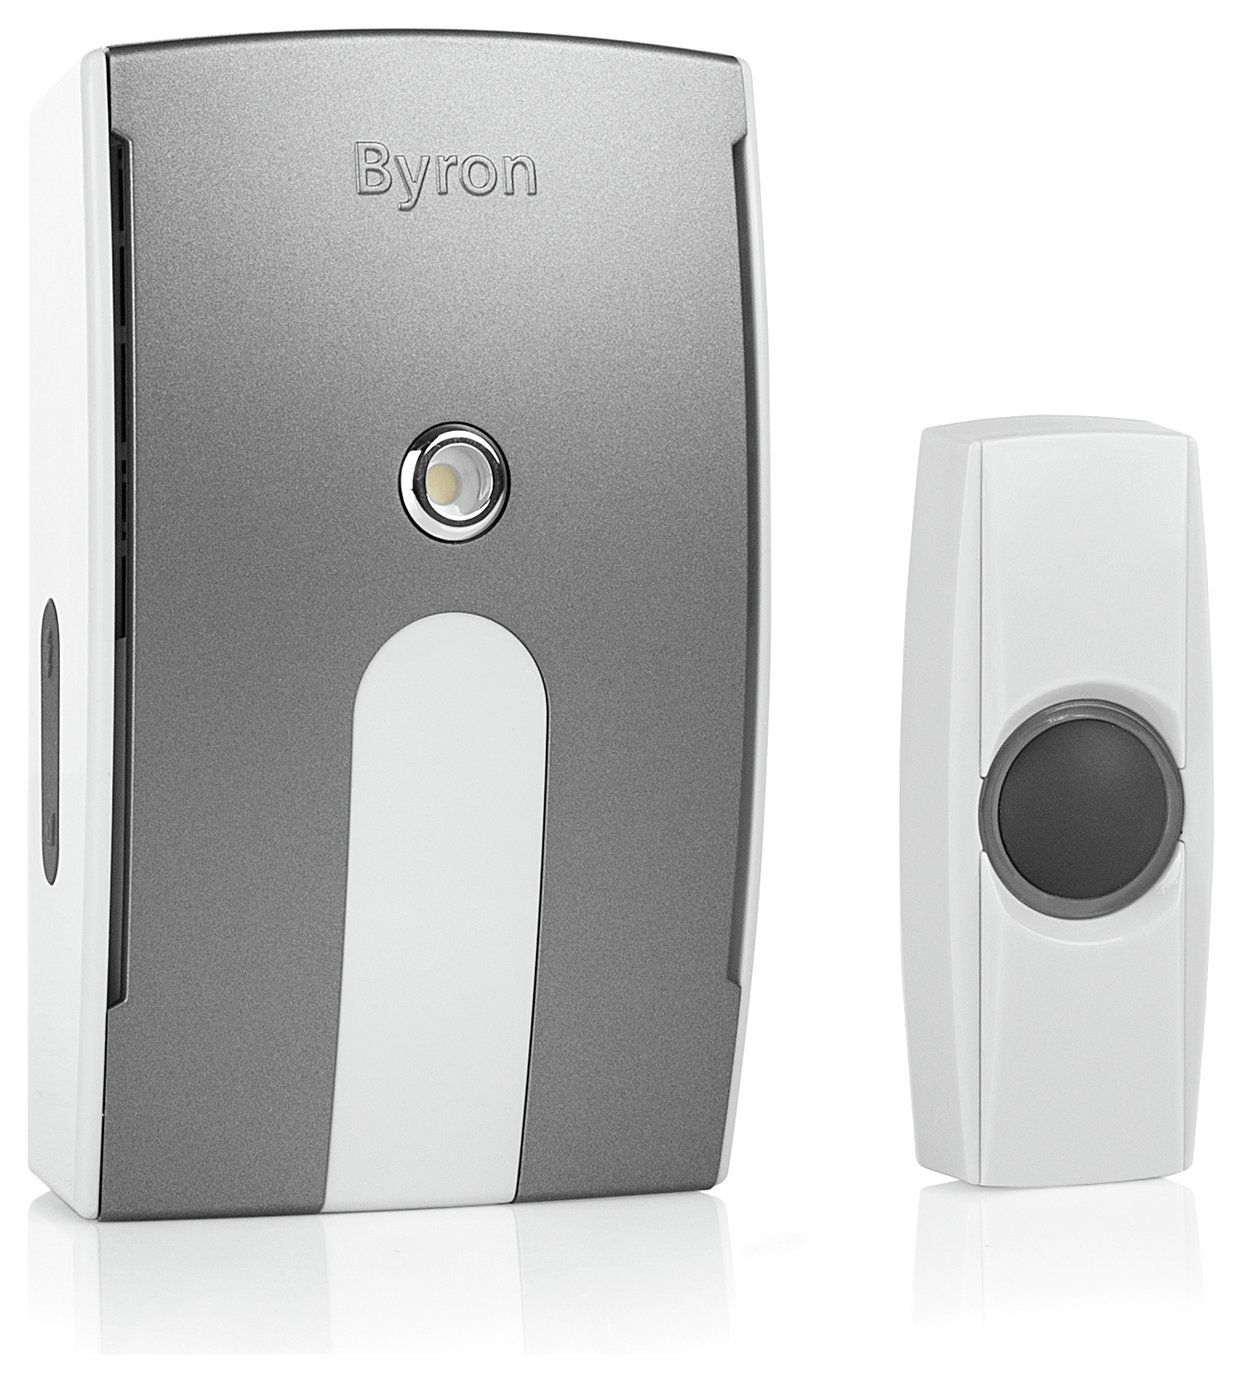 Image of Byron White 125m Plug-in Wireless Door Chime Kit